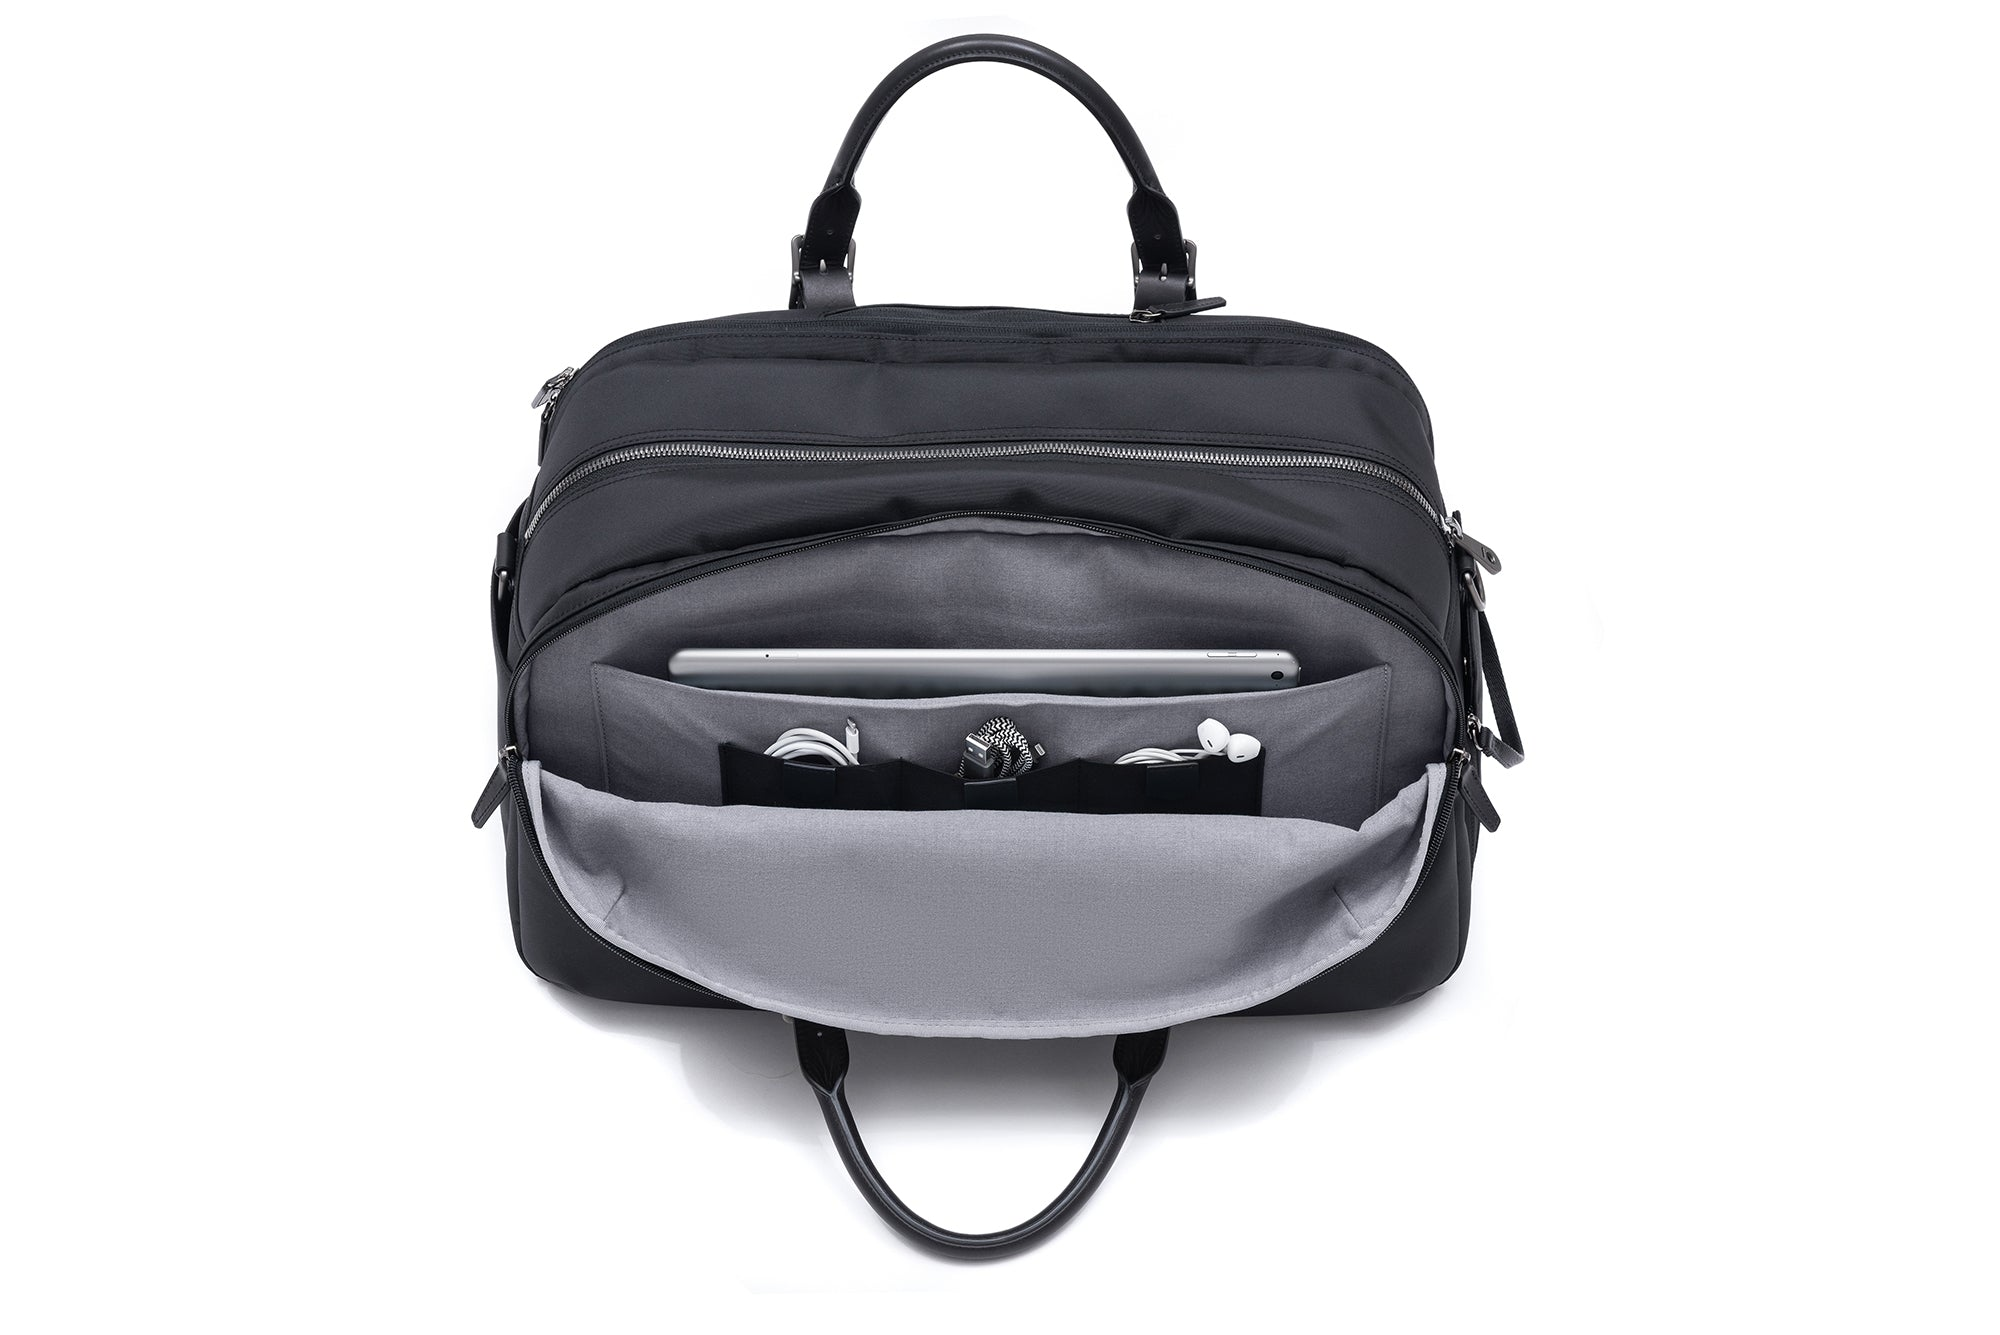 The Regimen Gym Bag by Stuart & Lau _ Men's Duffel Gym Bag